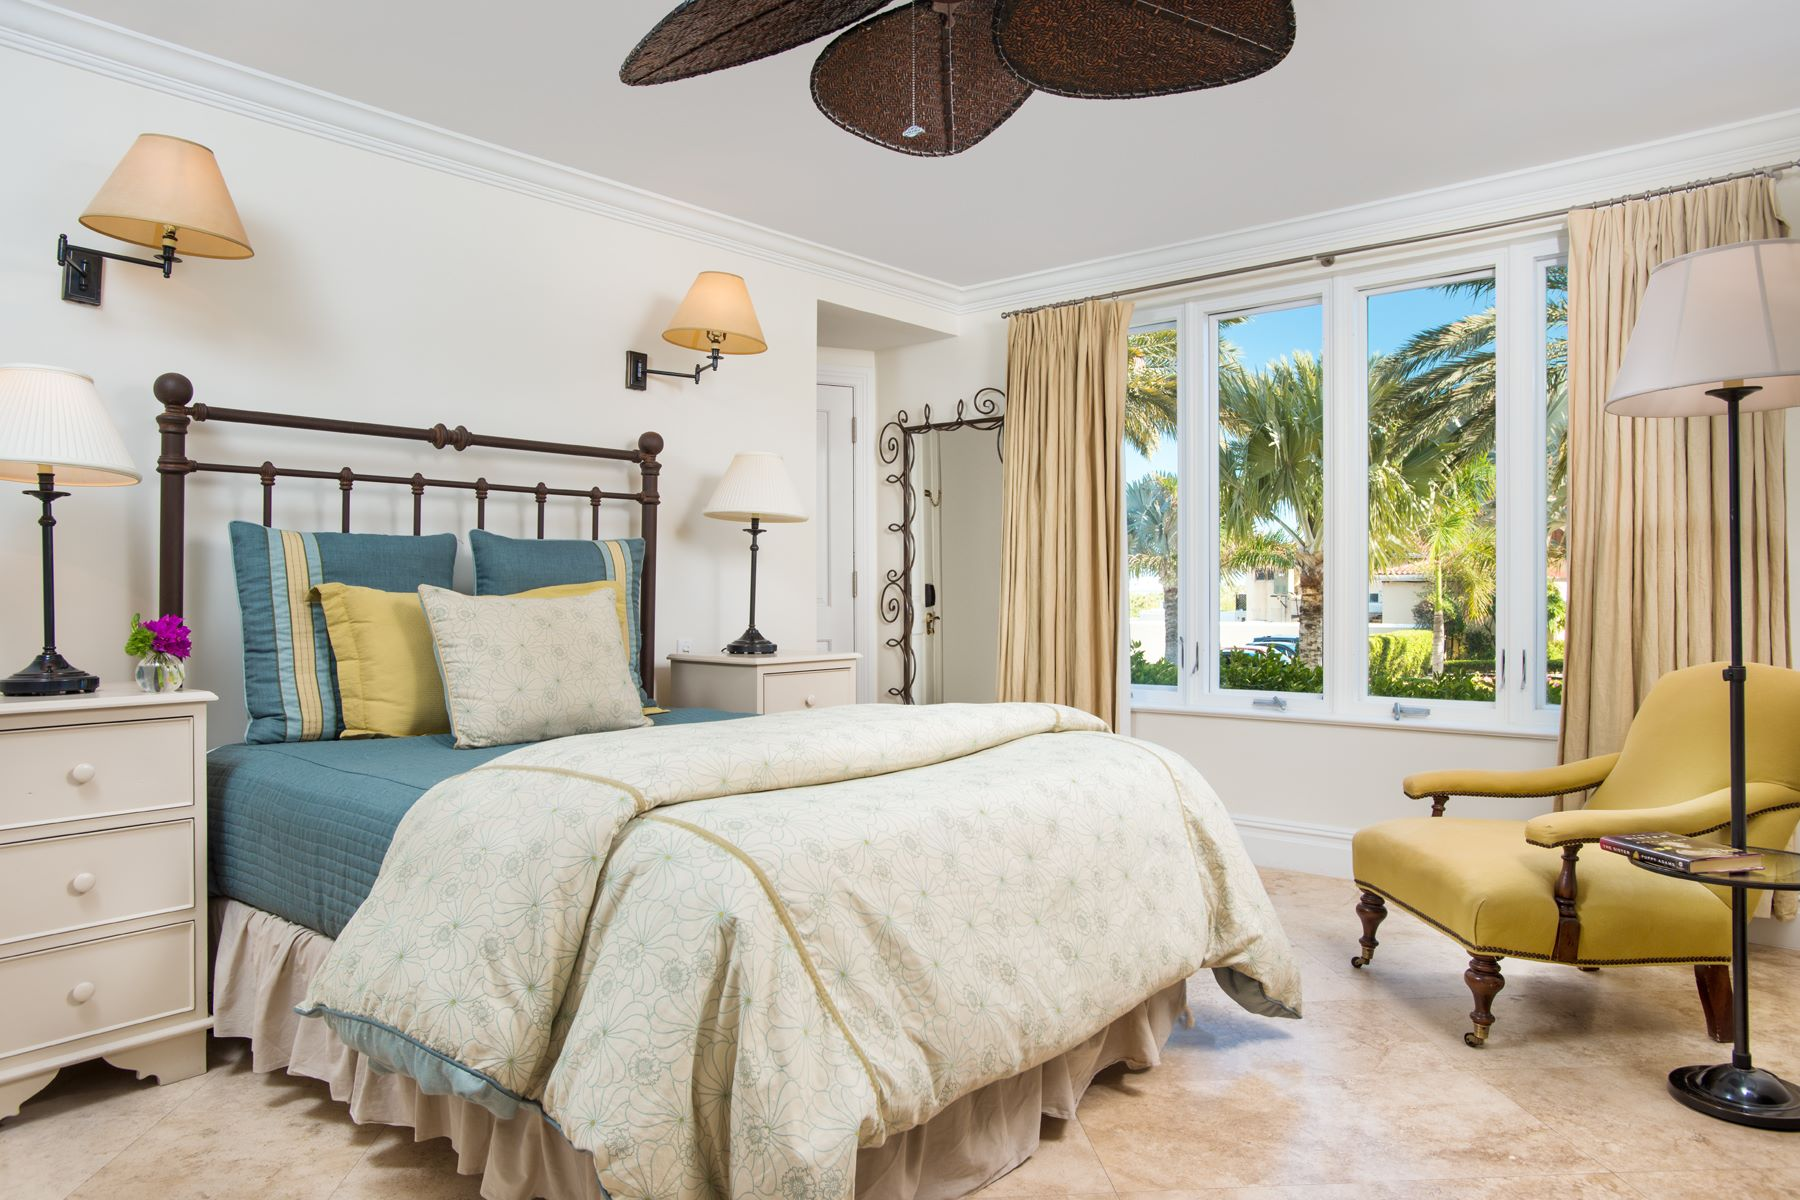 Additional photo for property listing at The Somerset - Suite E102 Beachfront Grace Bay, Провиденсьялес TCI BWI Теркс И Кайкос